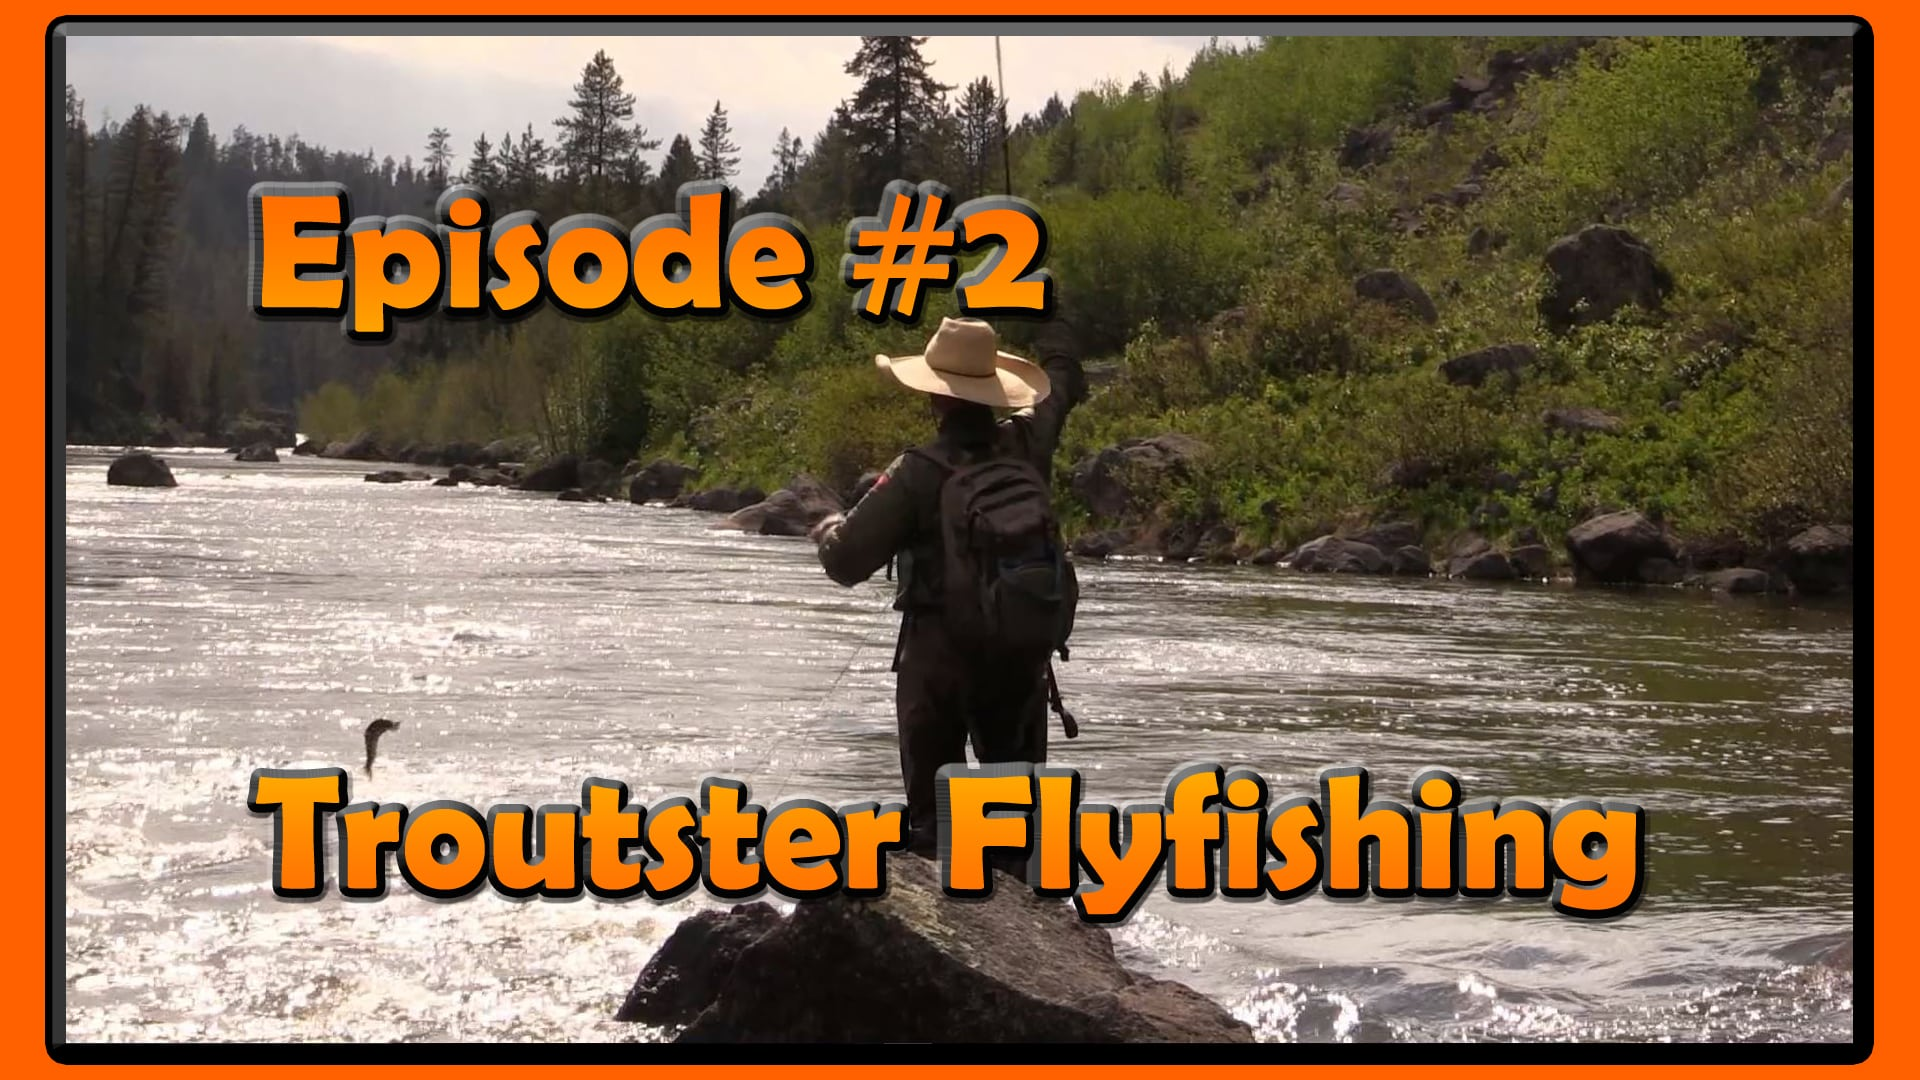 Troutster fly fishing for trout video - Episode 2